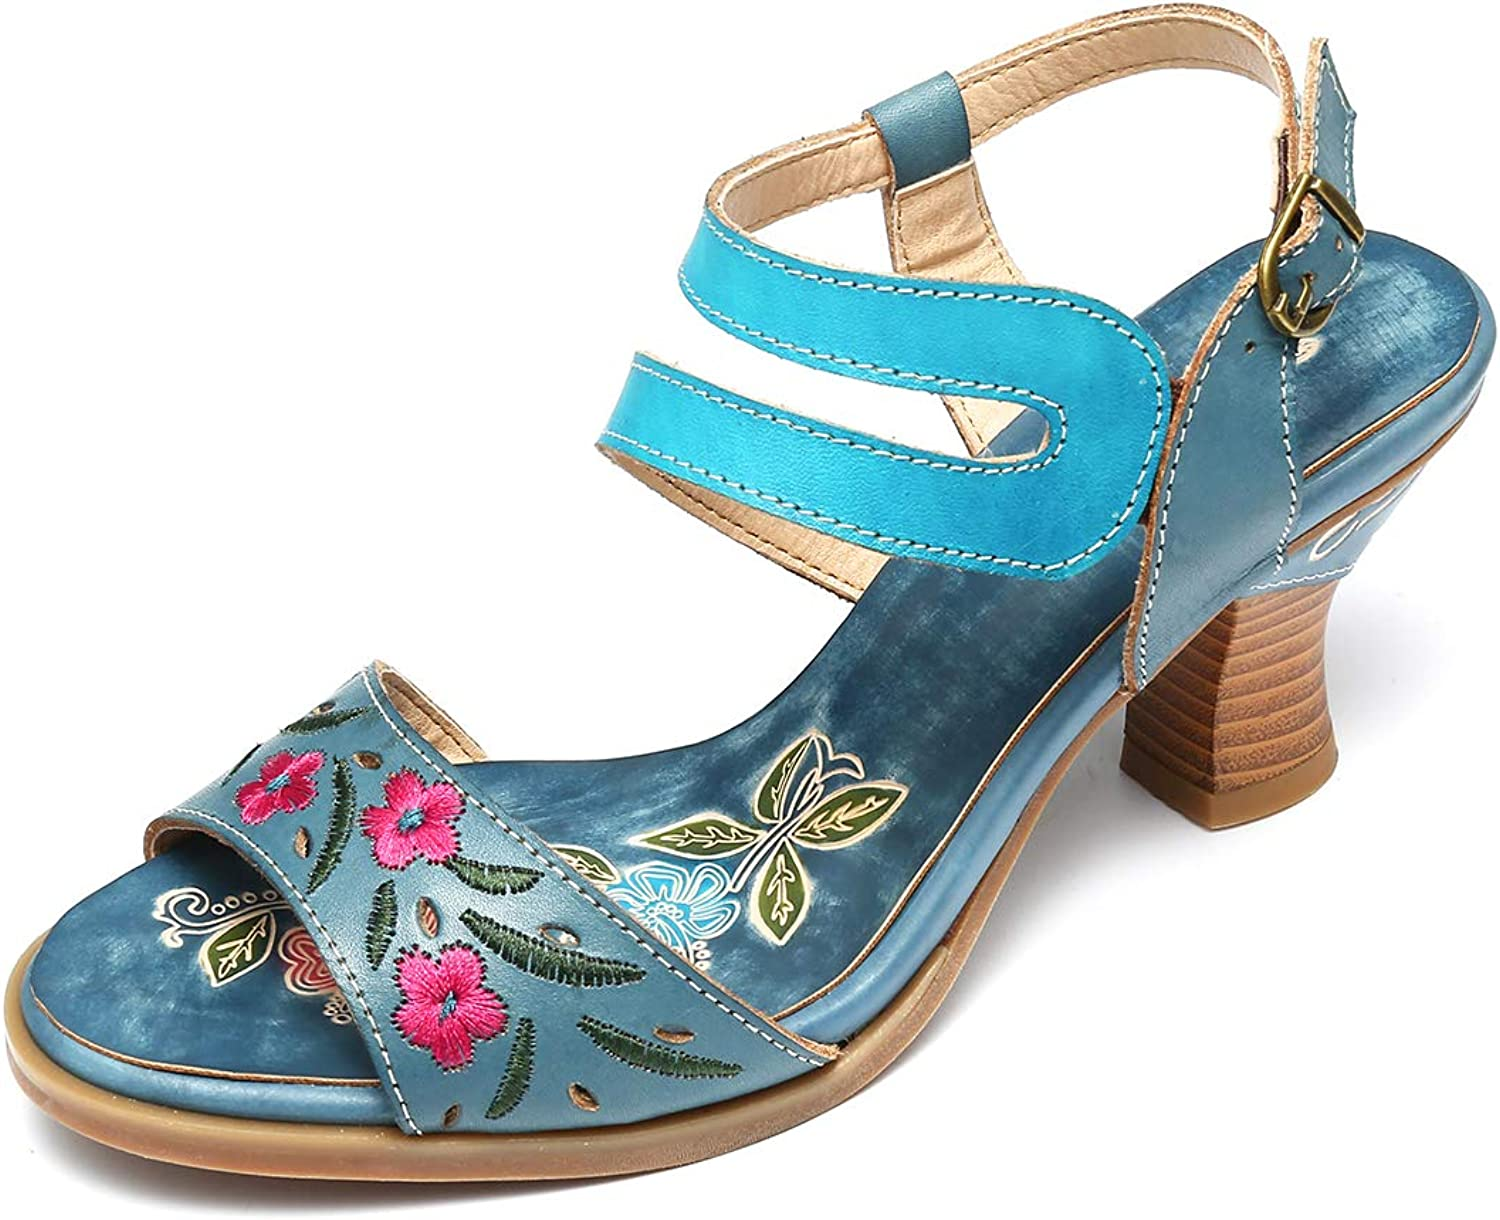 Gracosy Women's Leather Sandals, Mid Heel Pumps Summer Heeled Sandal Buckle Handmade Embroidery Pattern Slippers